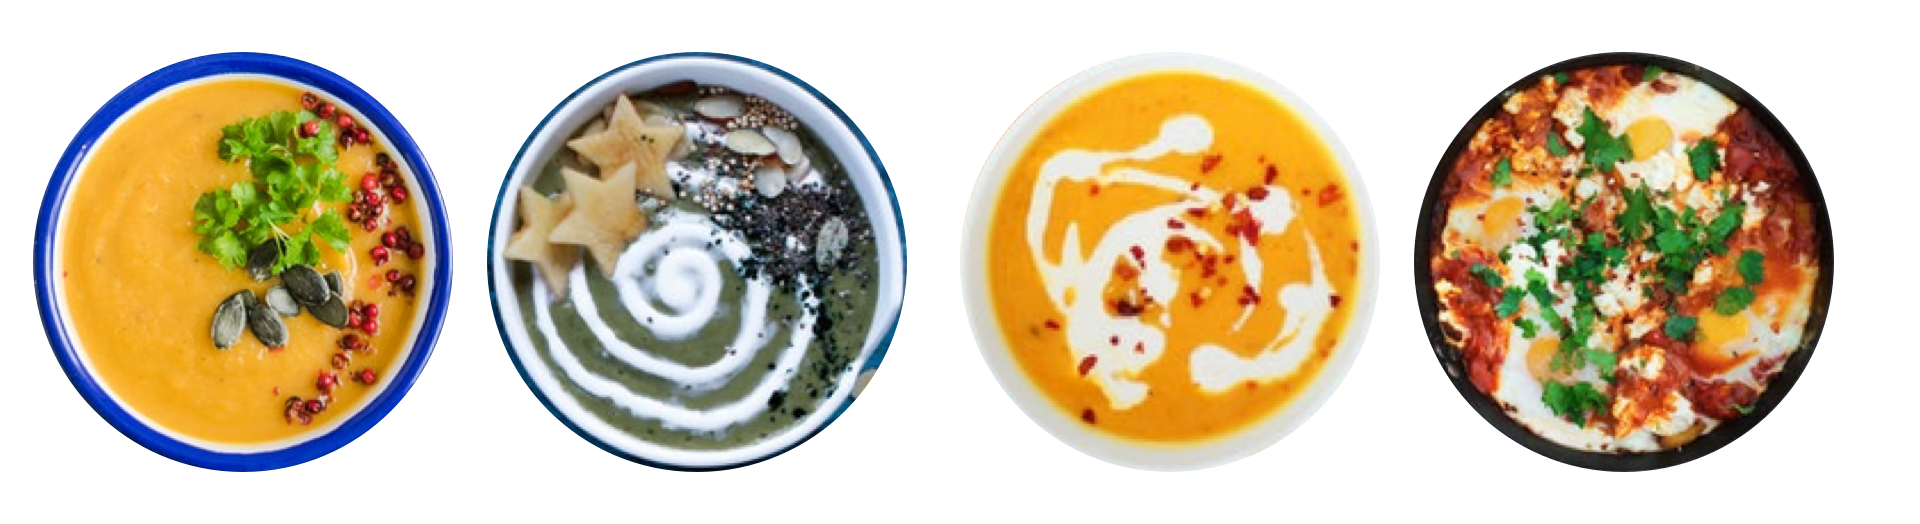 bowls of soup.png